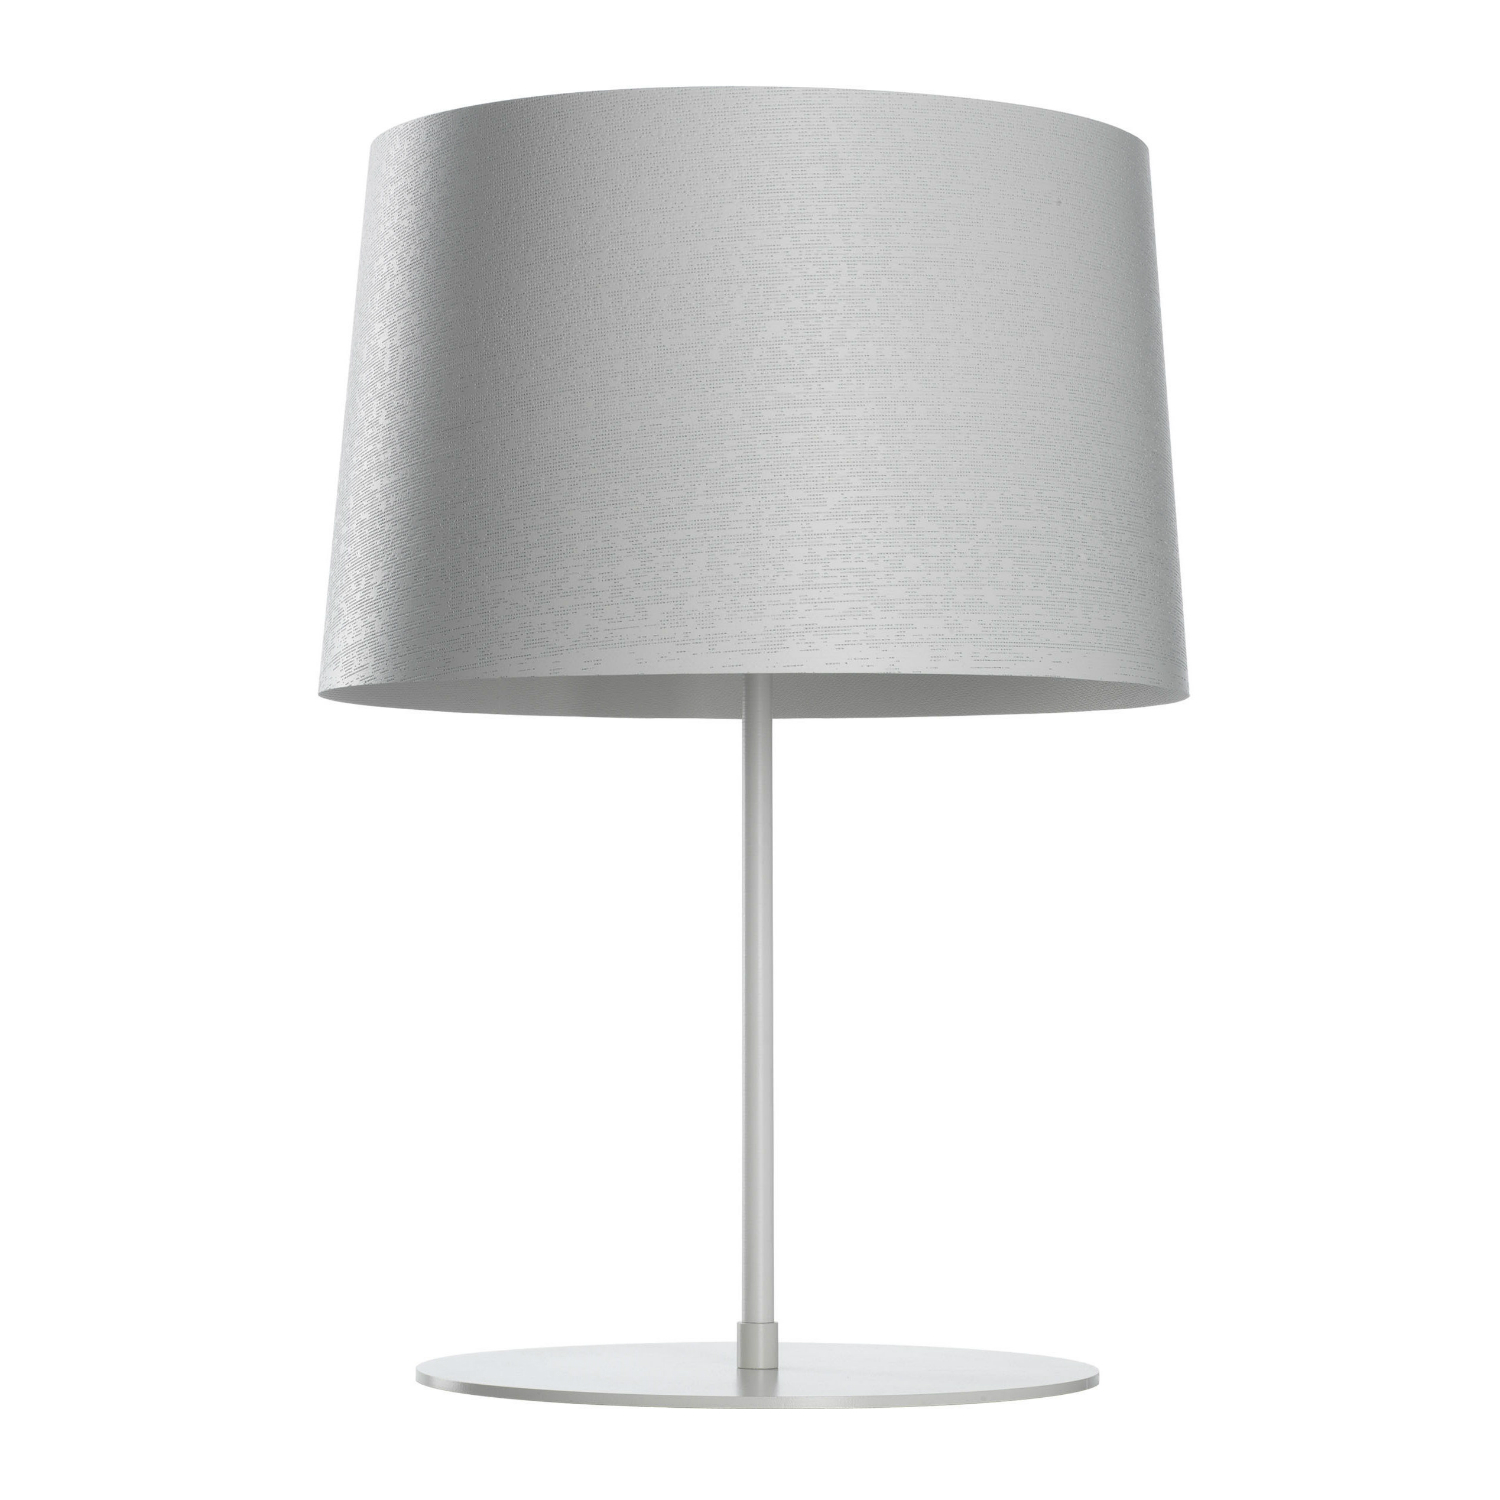 Twiggy XL Lampe de table E27 3x77w Blanc